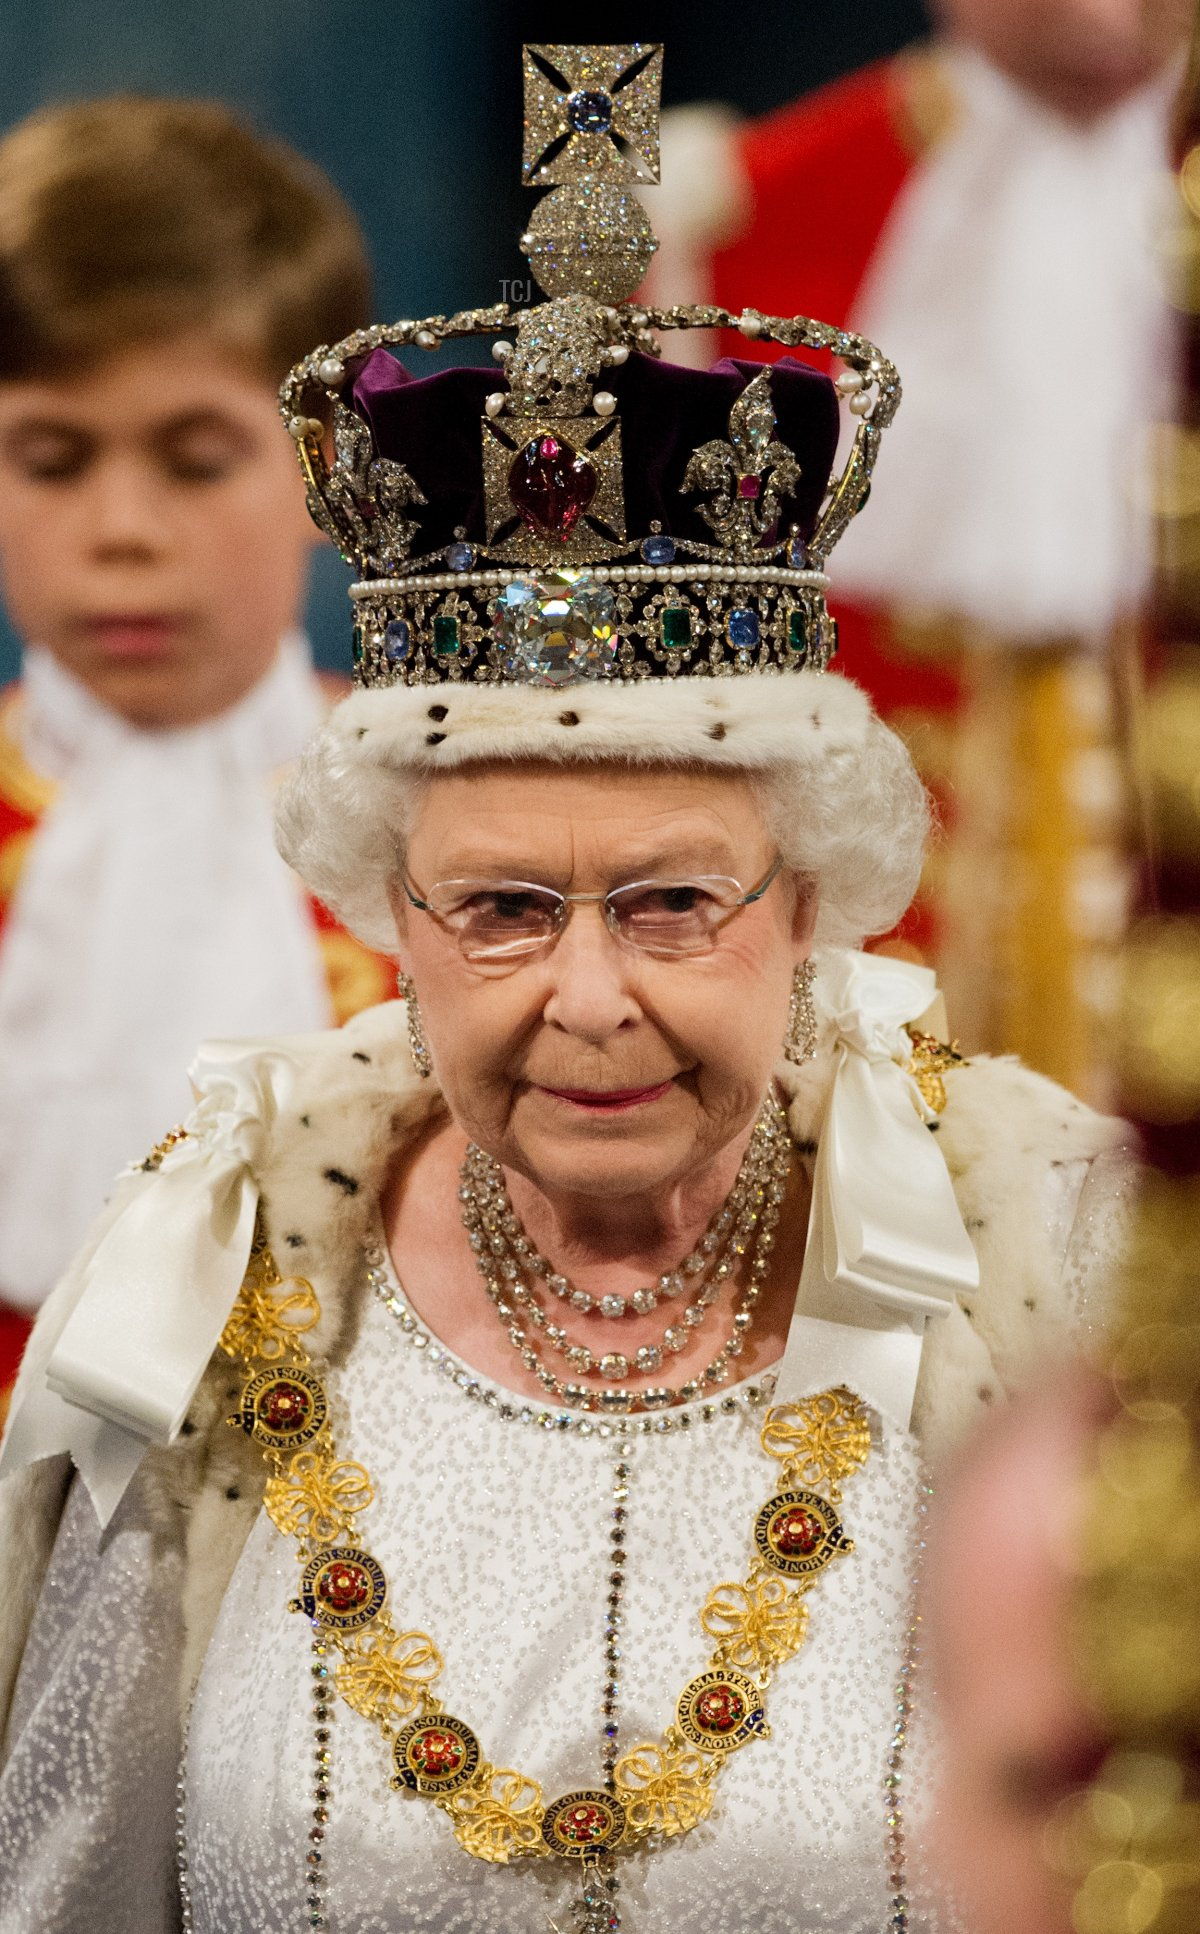 Britain's Queen Elizabeth II wearing the Imperial State Crown walks through the Royal Gallery toward the Chamber of the House of Lords in the Palace of Westminster during the State Opening of Parliament in London on May 9, 2012